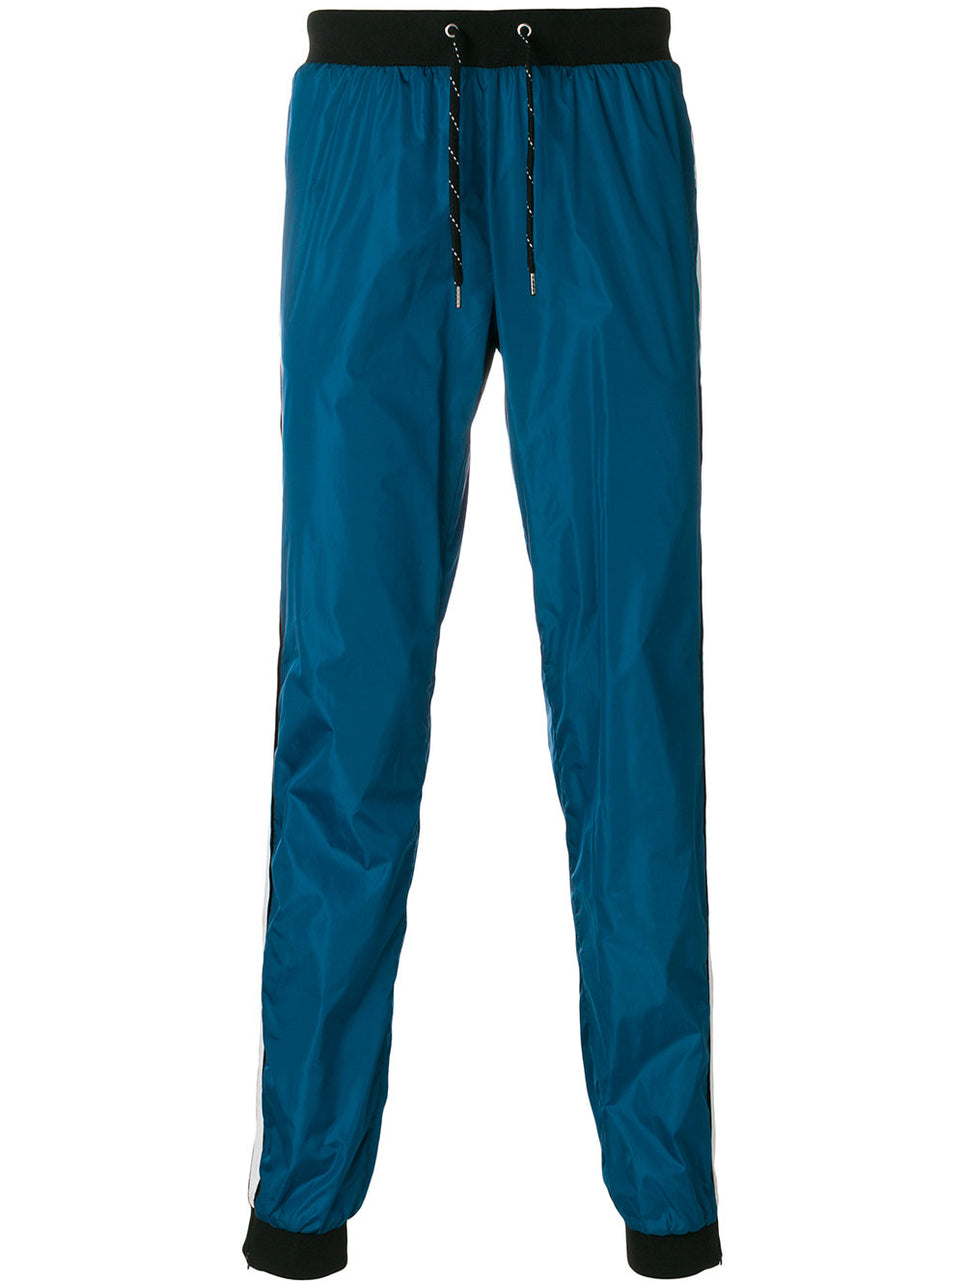 Andrea Crews Blue Pant